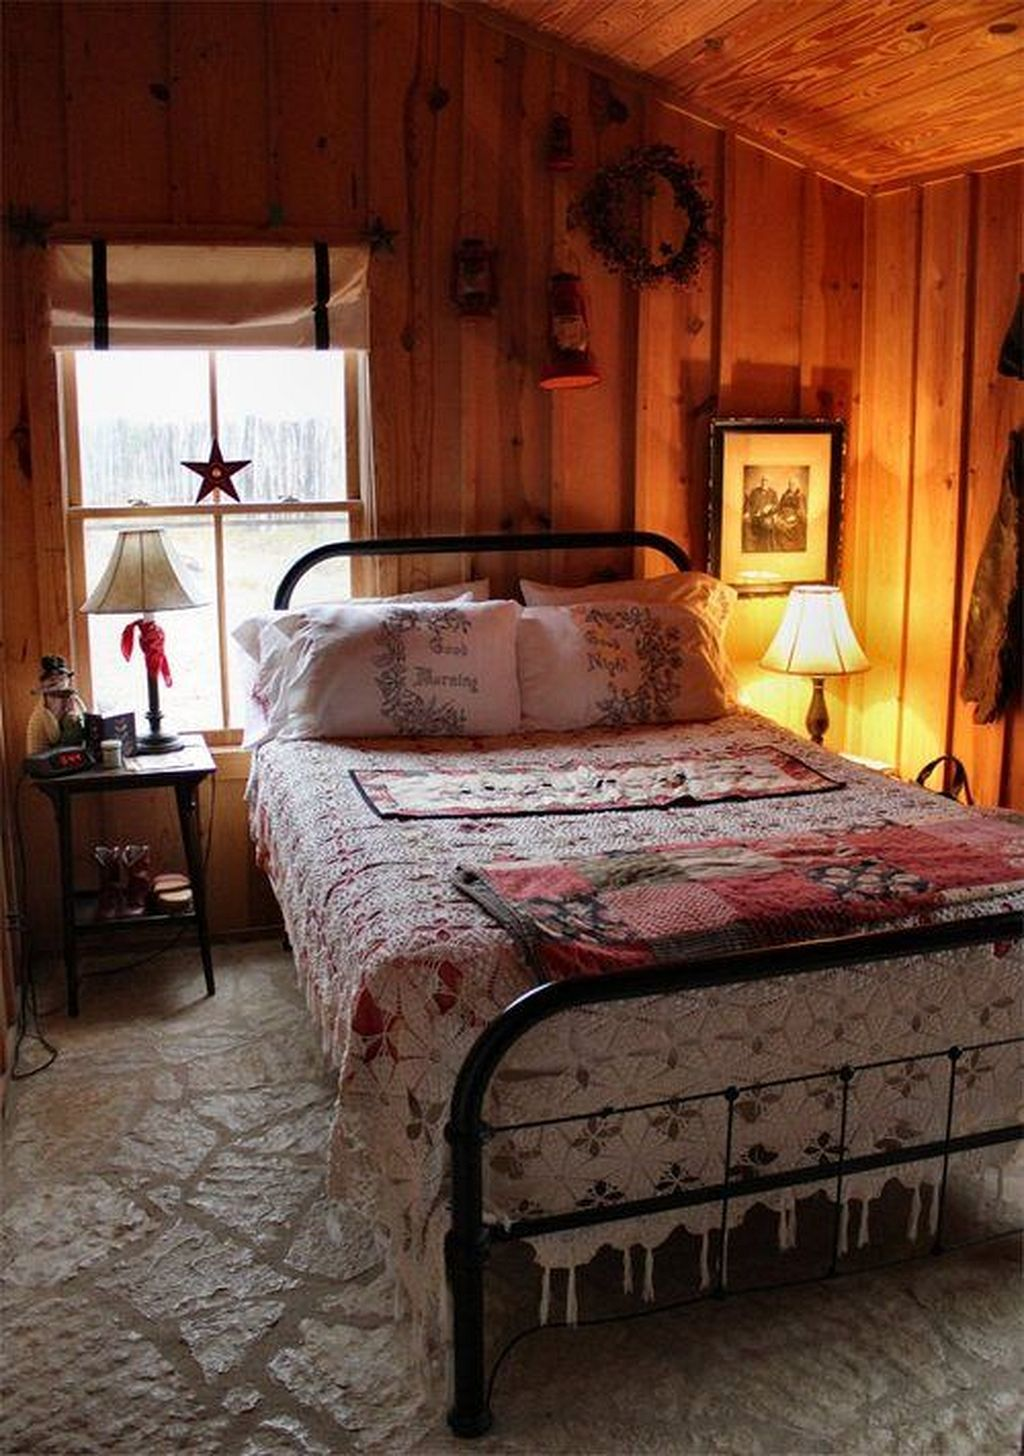 50 Rustic Bedroom Decorating Ideas: 50 Elegant And Cozy Bedroom Ideas With Small Spaces